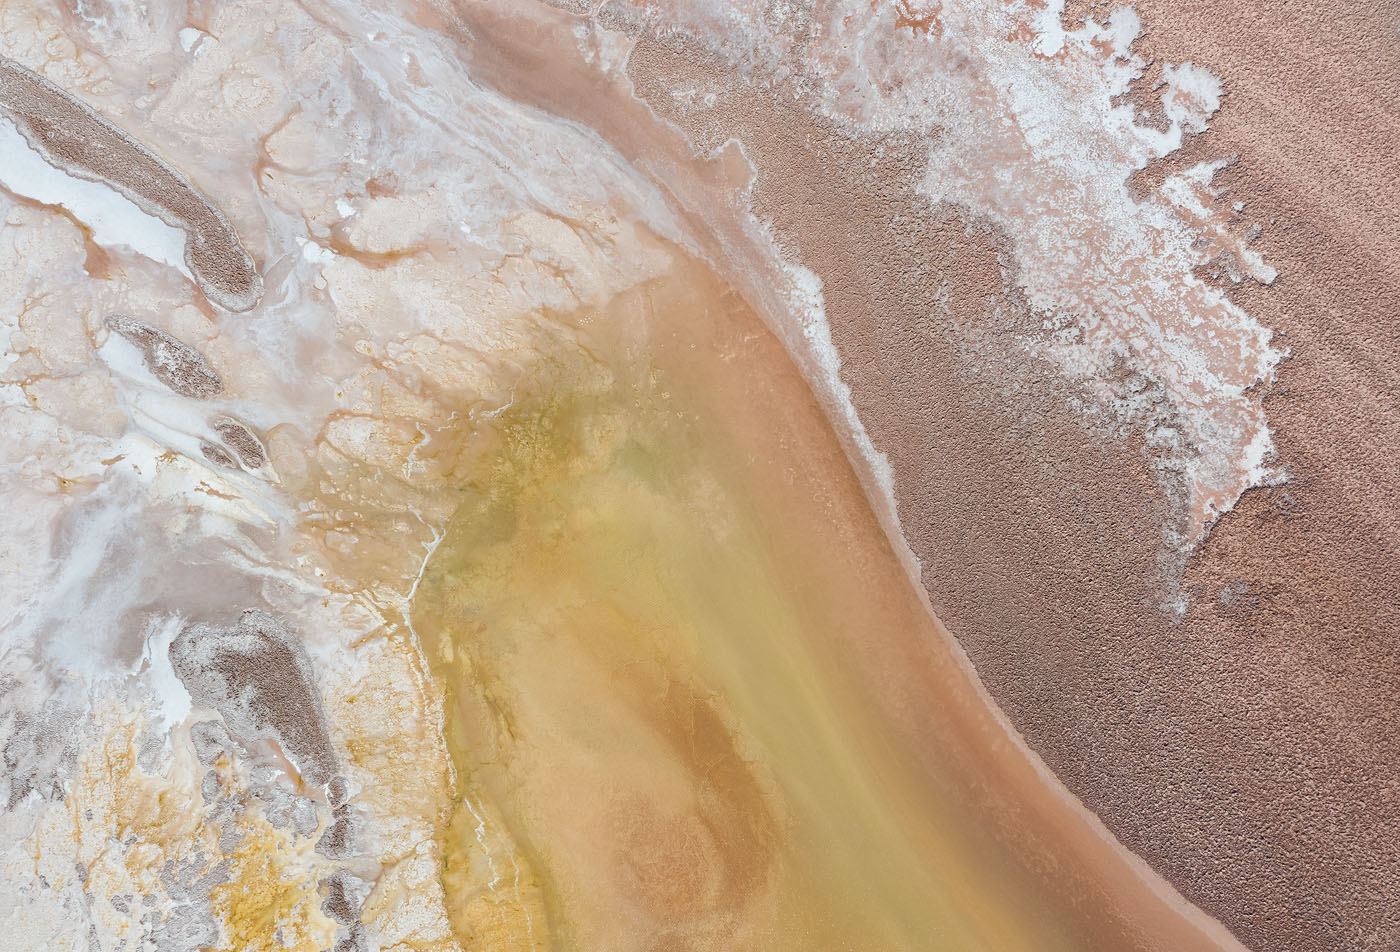 Amazing natural colors and patterns in the Argentinean high-altitude desert. Shooting this top-down gave the image a painting-like appearance.